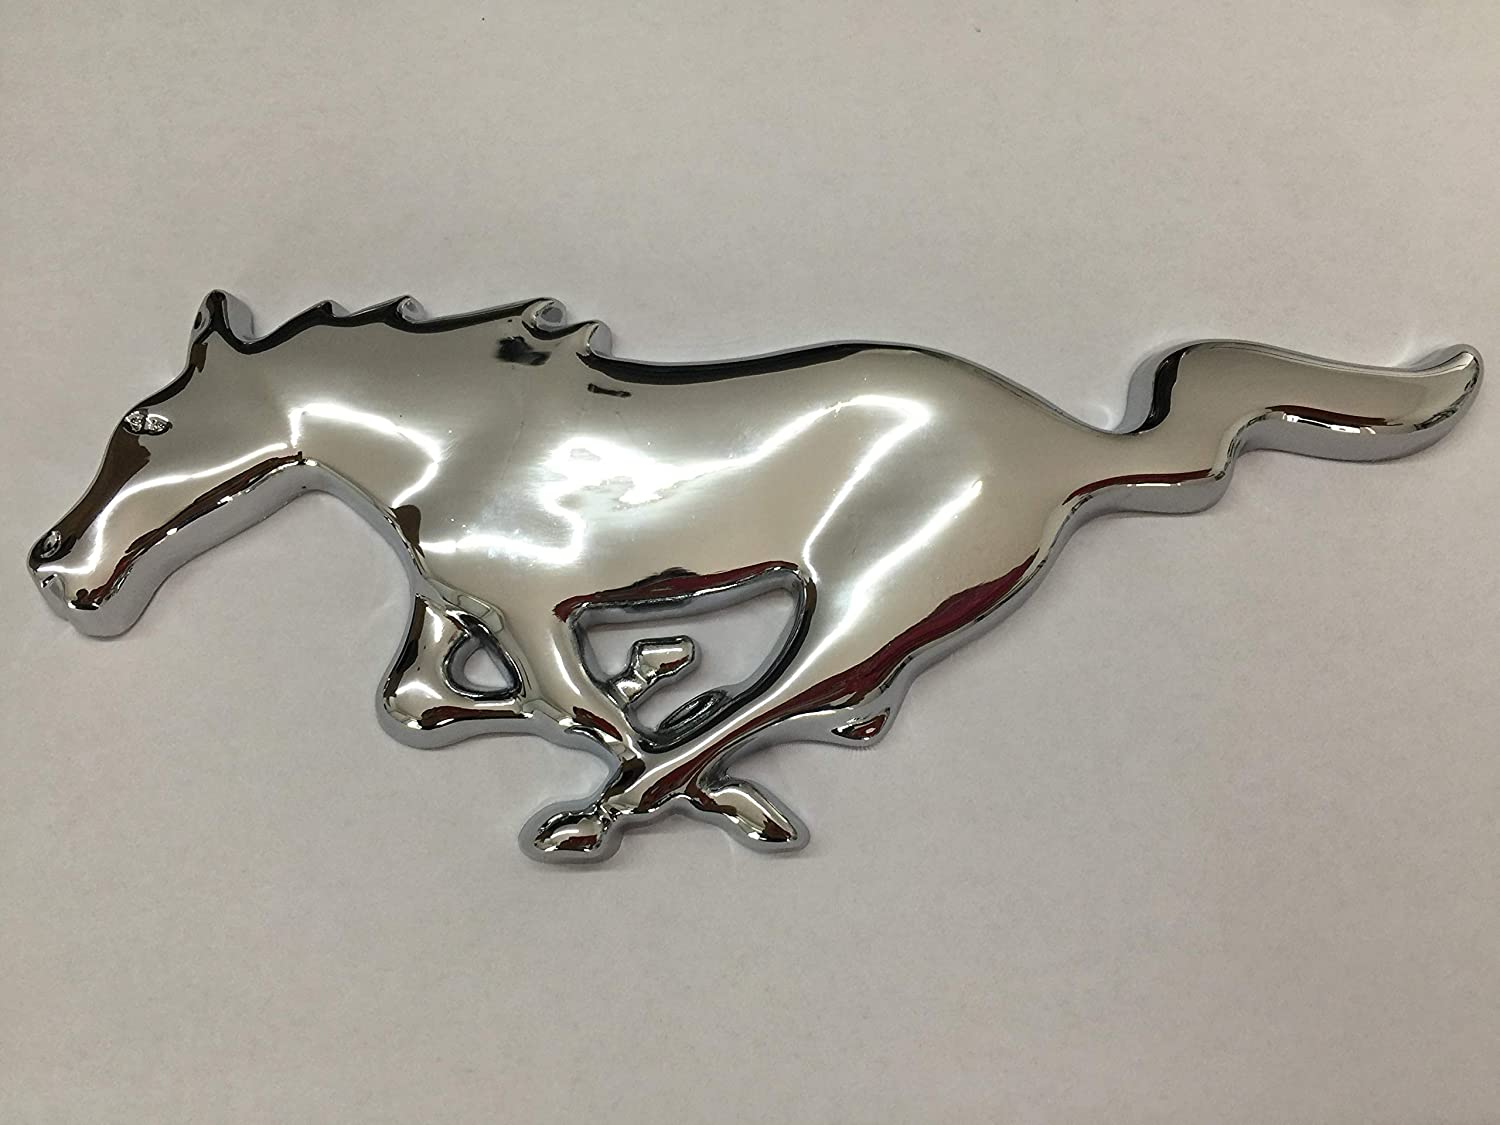 Chrome Metal Front Grille Running Horse Emblem Badge Running Horse Pony Emblem Fits Ford Mustang GT